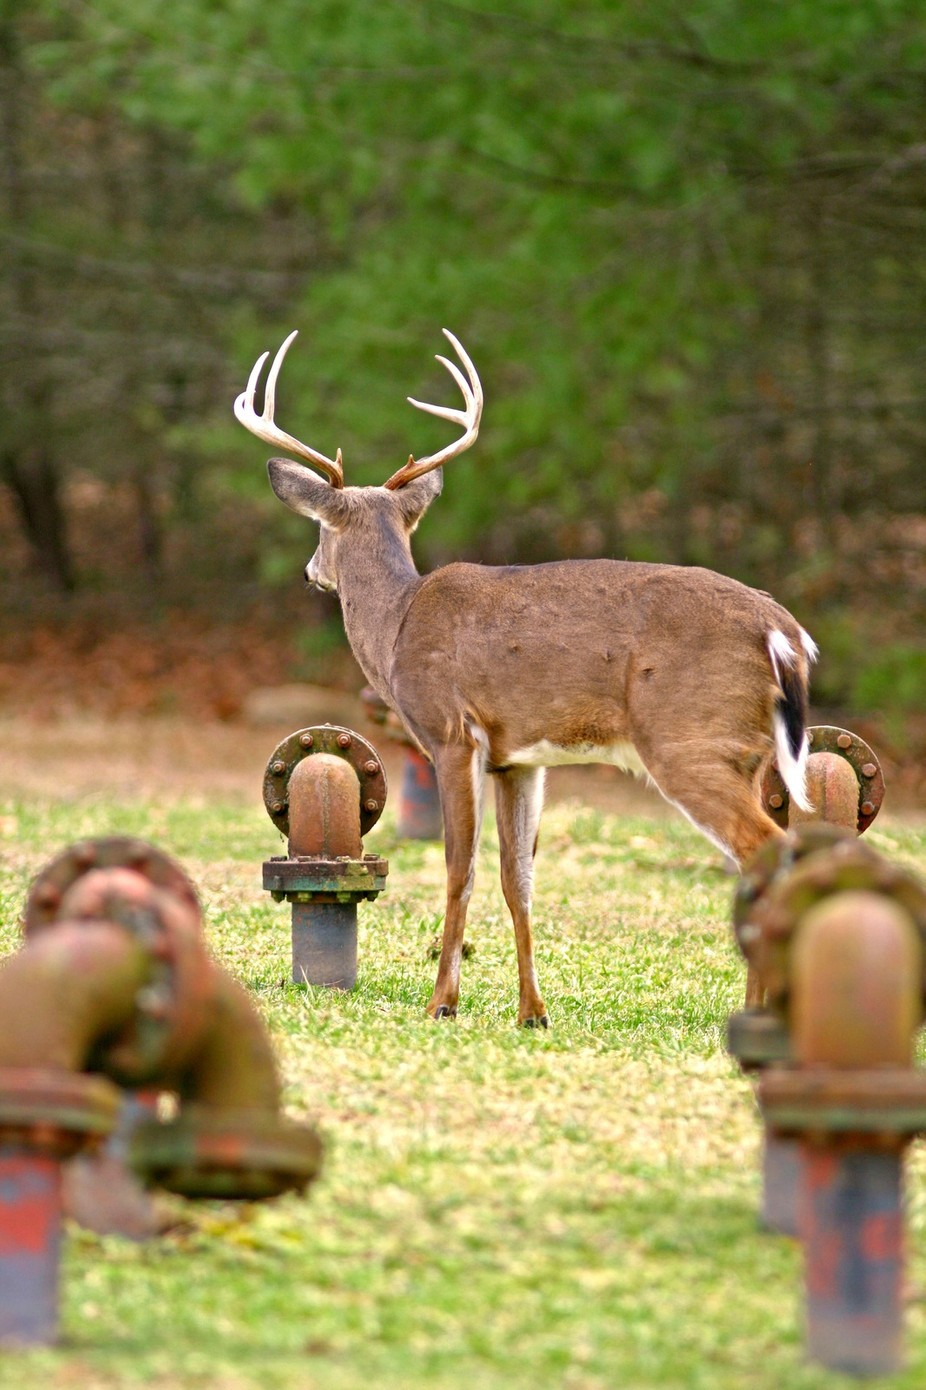 White Tail buck in old water main pipes